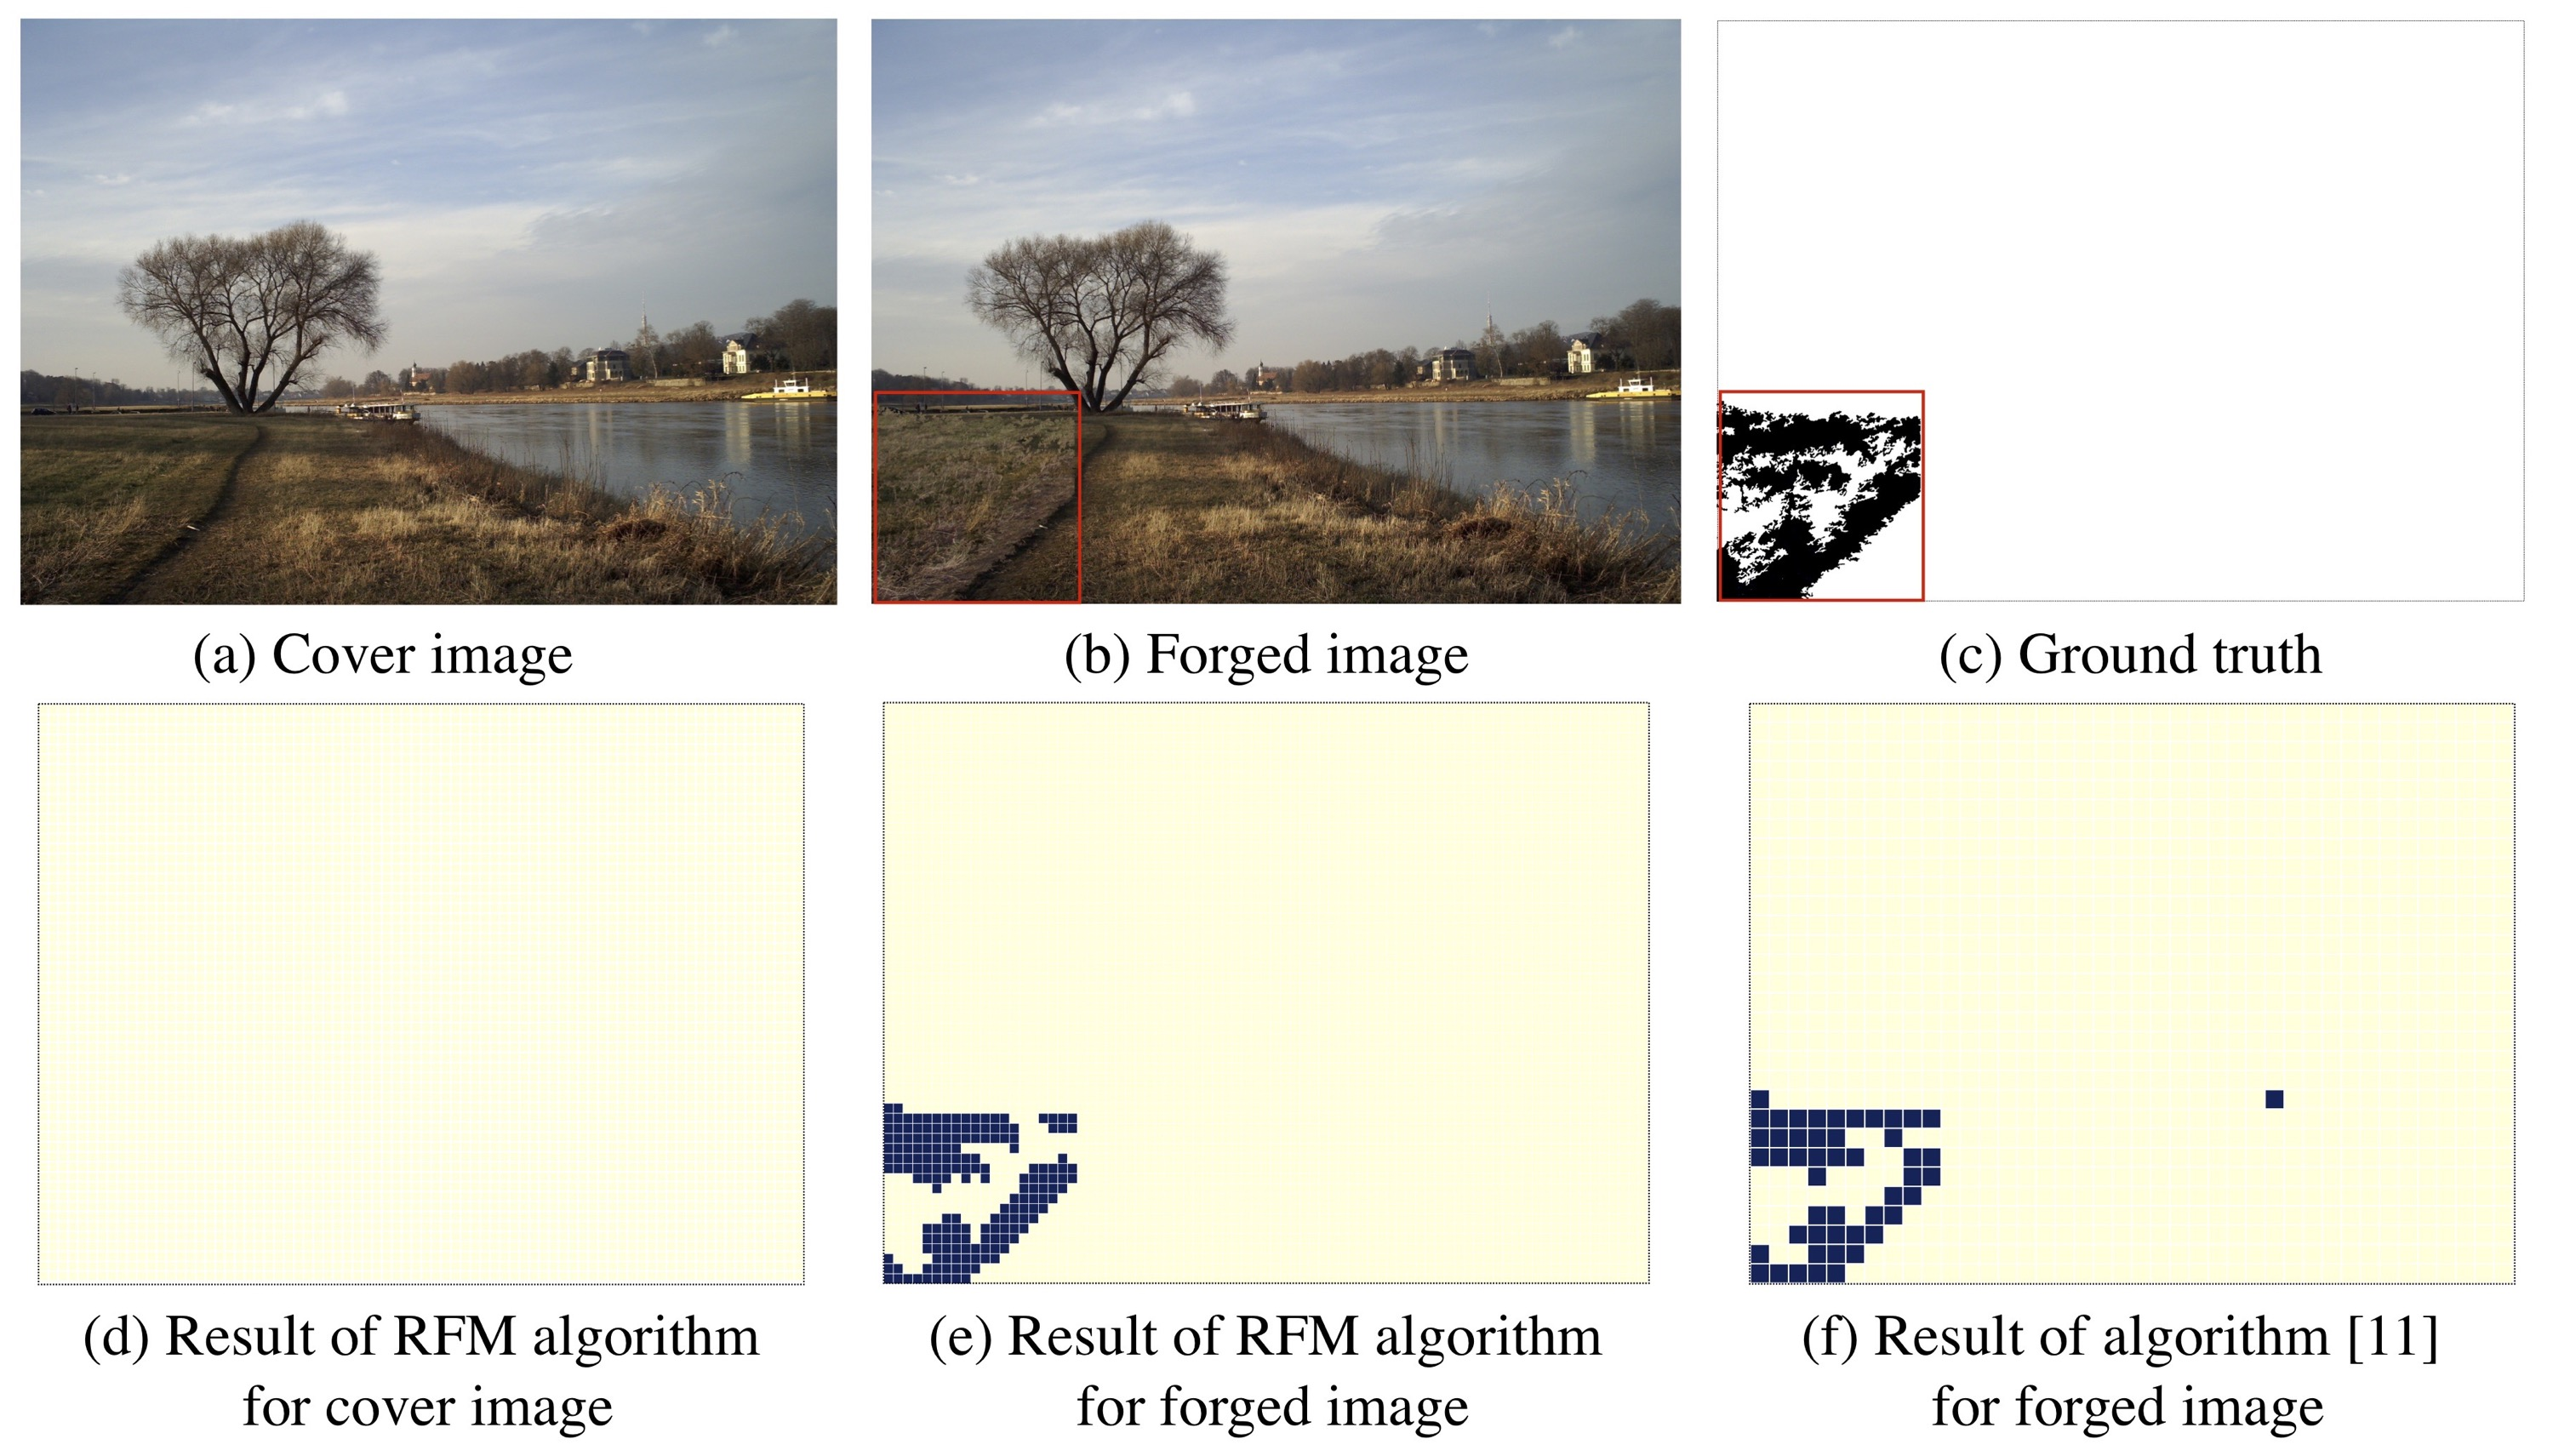 Results of comparative experiment with method proposed by Bondi et al. and our RFM method. (a)-(c) illustrates cover image, forged image, and ground truth image. (d) and (e) illustrates first iteration and output of RFM algorithm, (f) show result of Bondi et al.